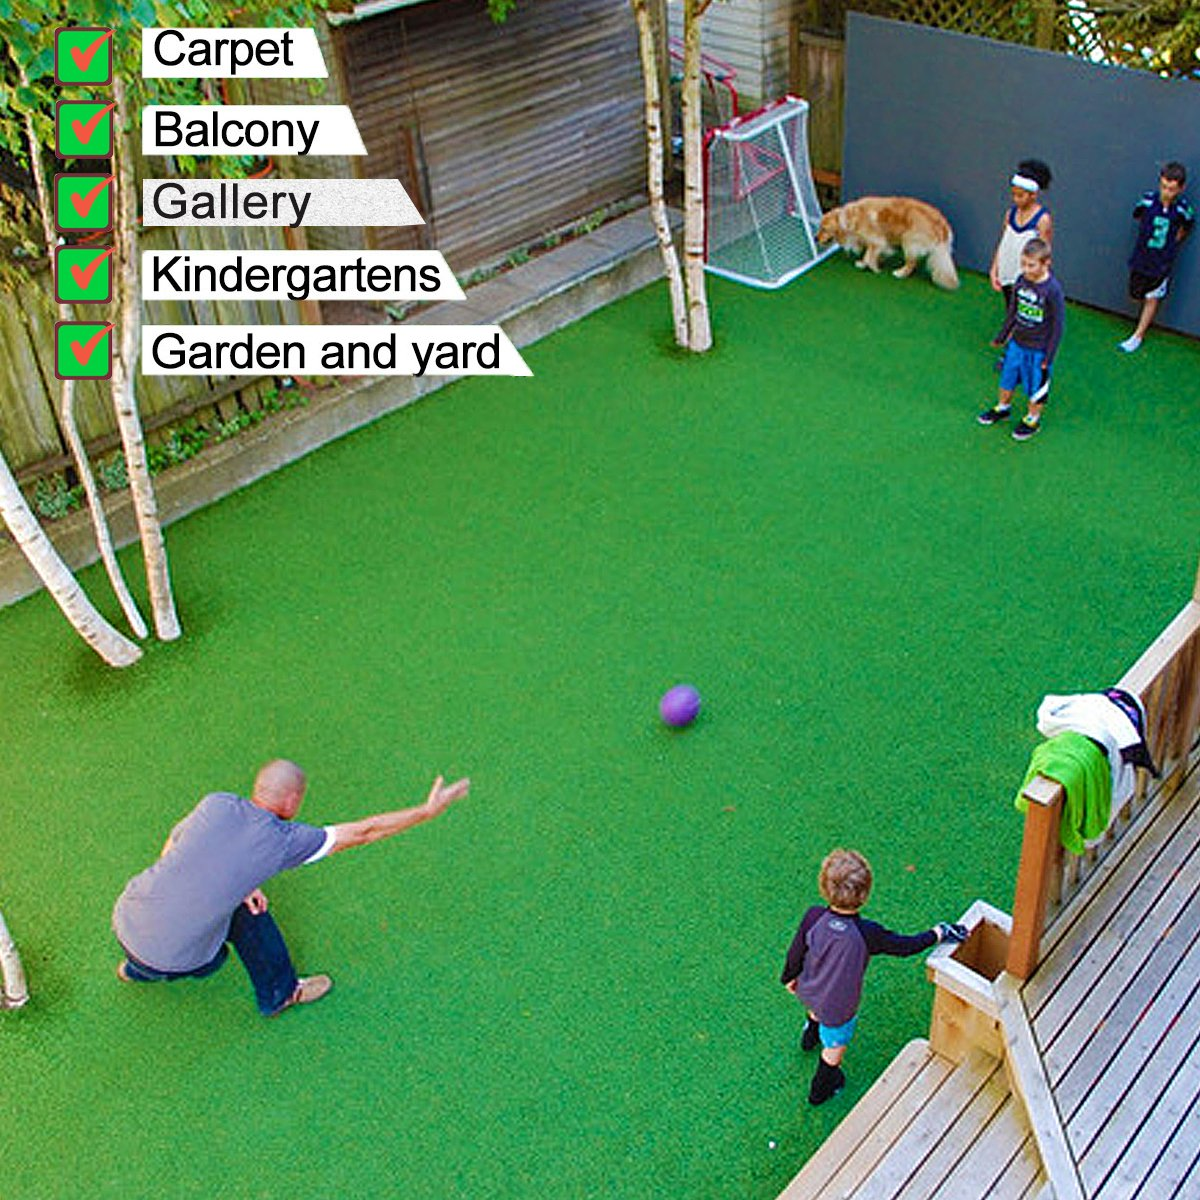 GT LIFE Artificial Grass for Dogs Synthetic Turf Artificial Lawn Rug with Drainage Holes&Rubber Backing, Blade Height 1.2inch Indoor/Outdoor Landscape (3.3x5=16.5 Sq ft, Autumn Lawn)